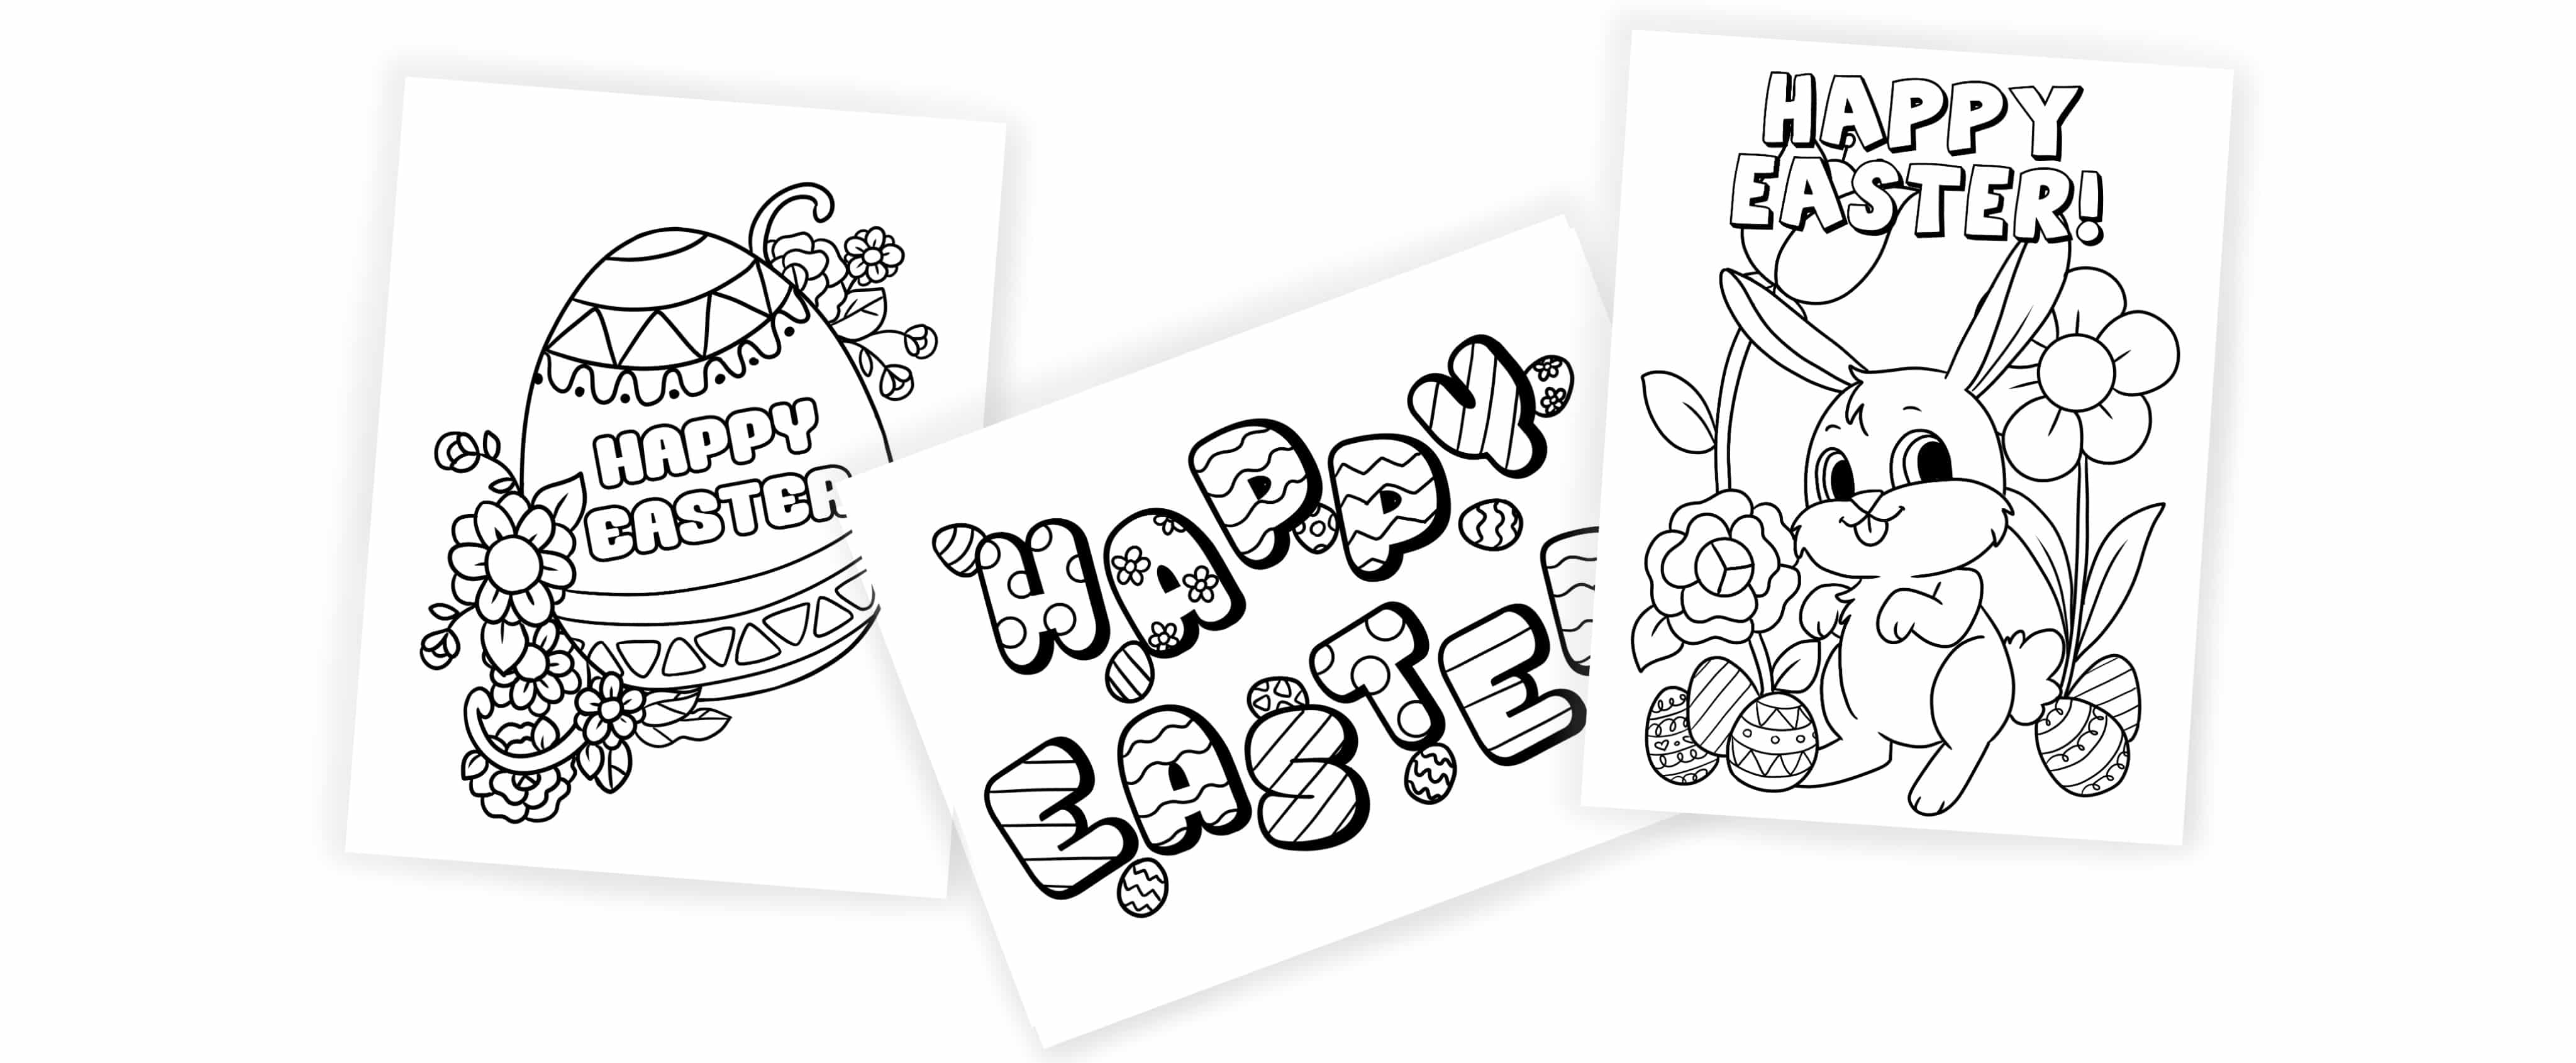 Don't waste money on expensive Easter cards when you can use these free printable Happy Easter coloring pages as DIY Easter cards that will be much more meaningful.